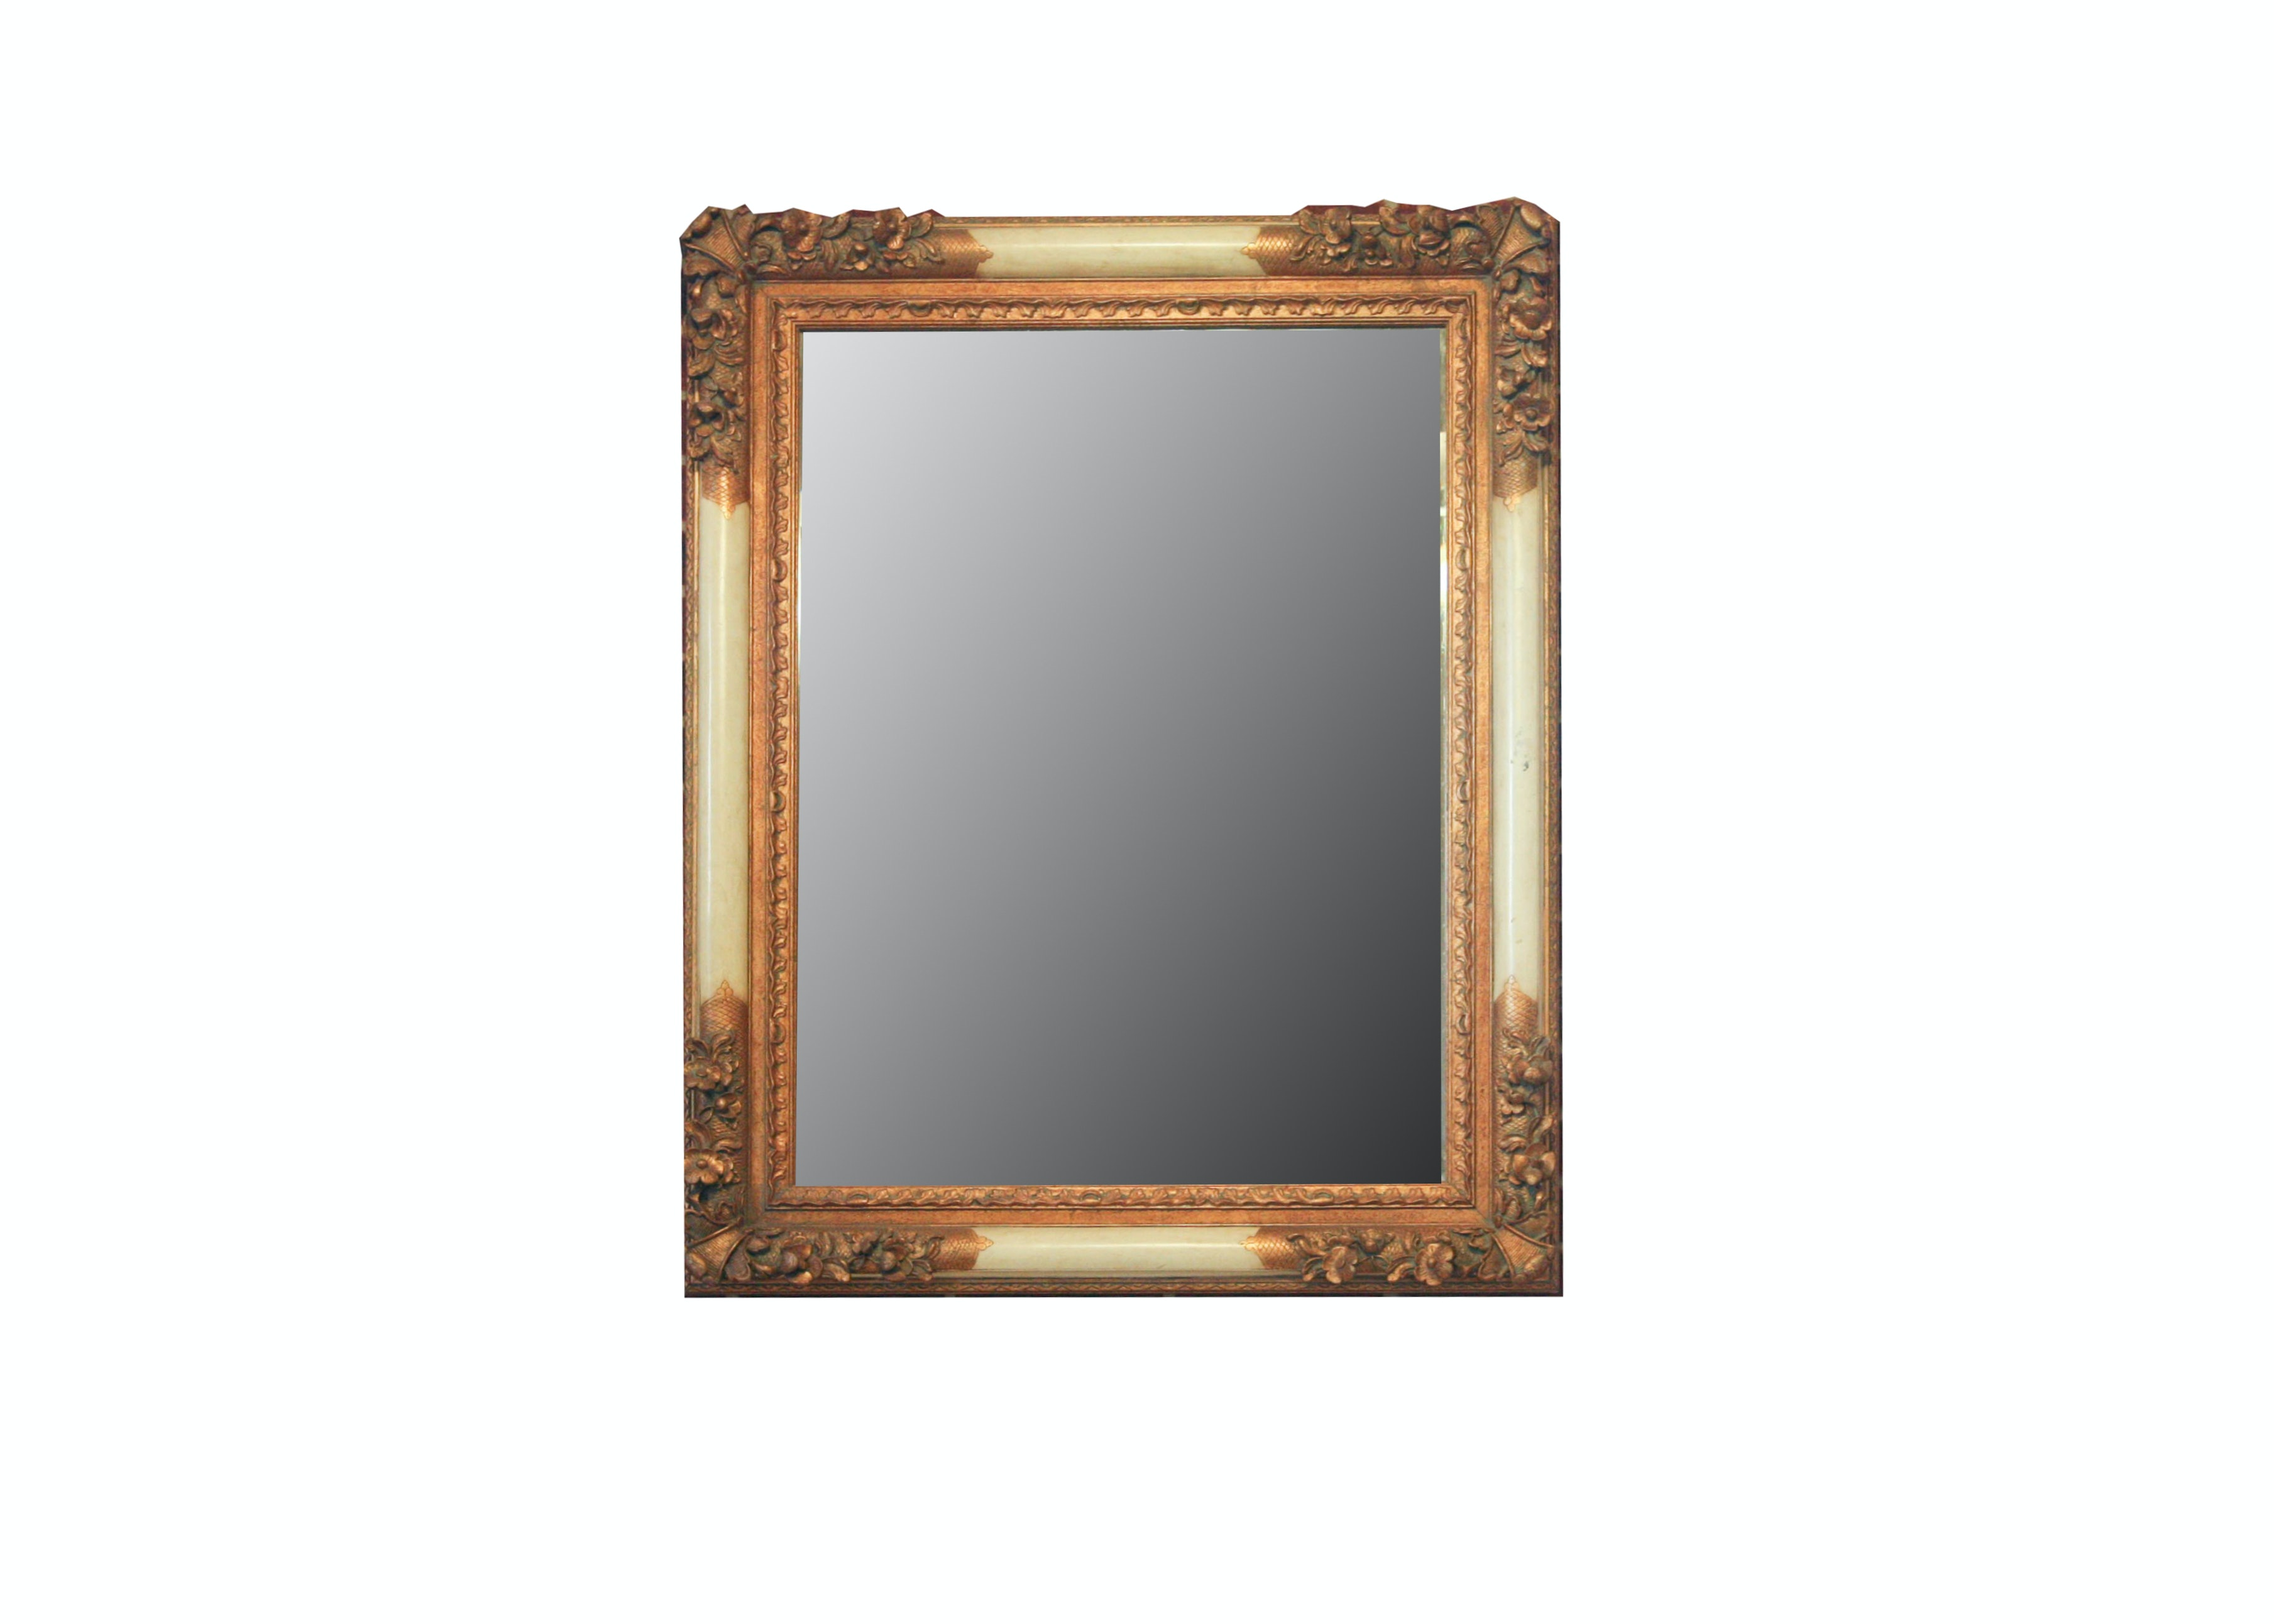 Large Wall Mirror with Carved Wood Frame